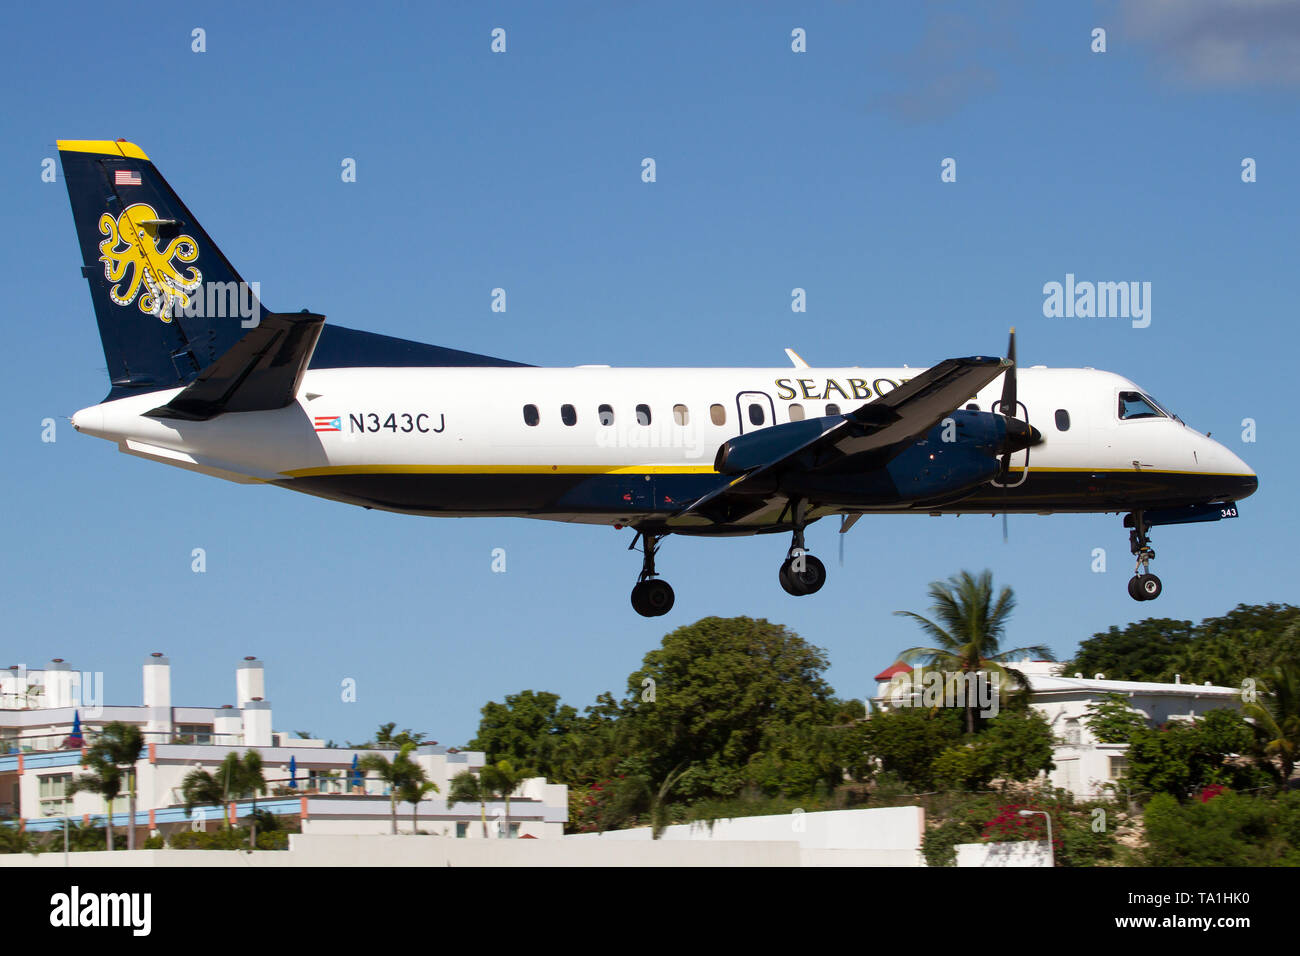 Simpson Bay, Saint Martin. 5th Dec, 2016. A Seaborne Airlines SAAB 340 seen landing at airport Princess Juliana just over Maho beach. Credit: Fabrizio Gandolfo/SOPA Images/ZUMA Wire/Alamy Live News - Stock Image